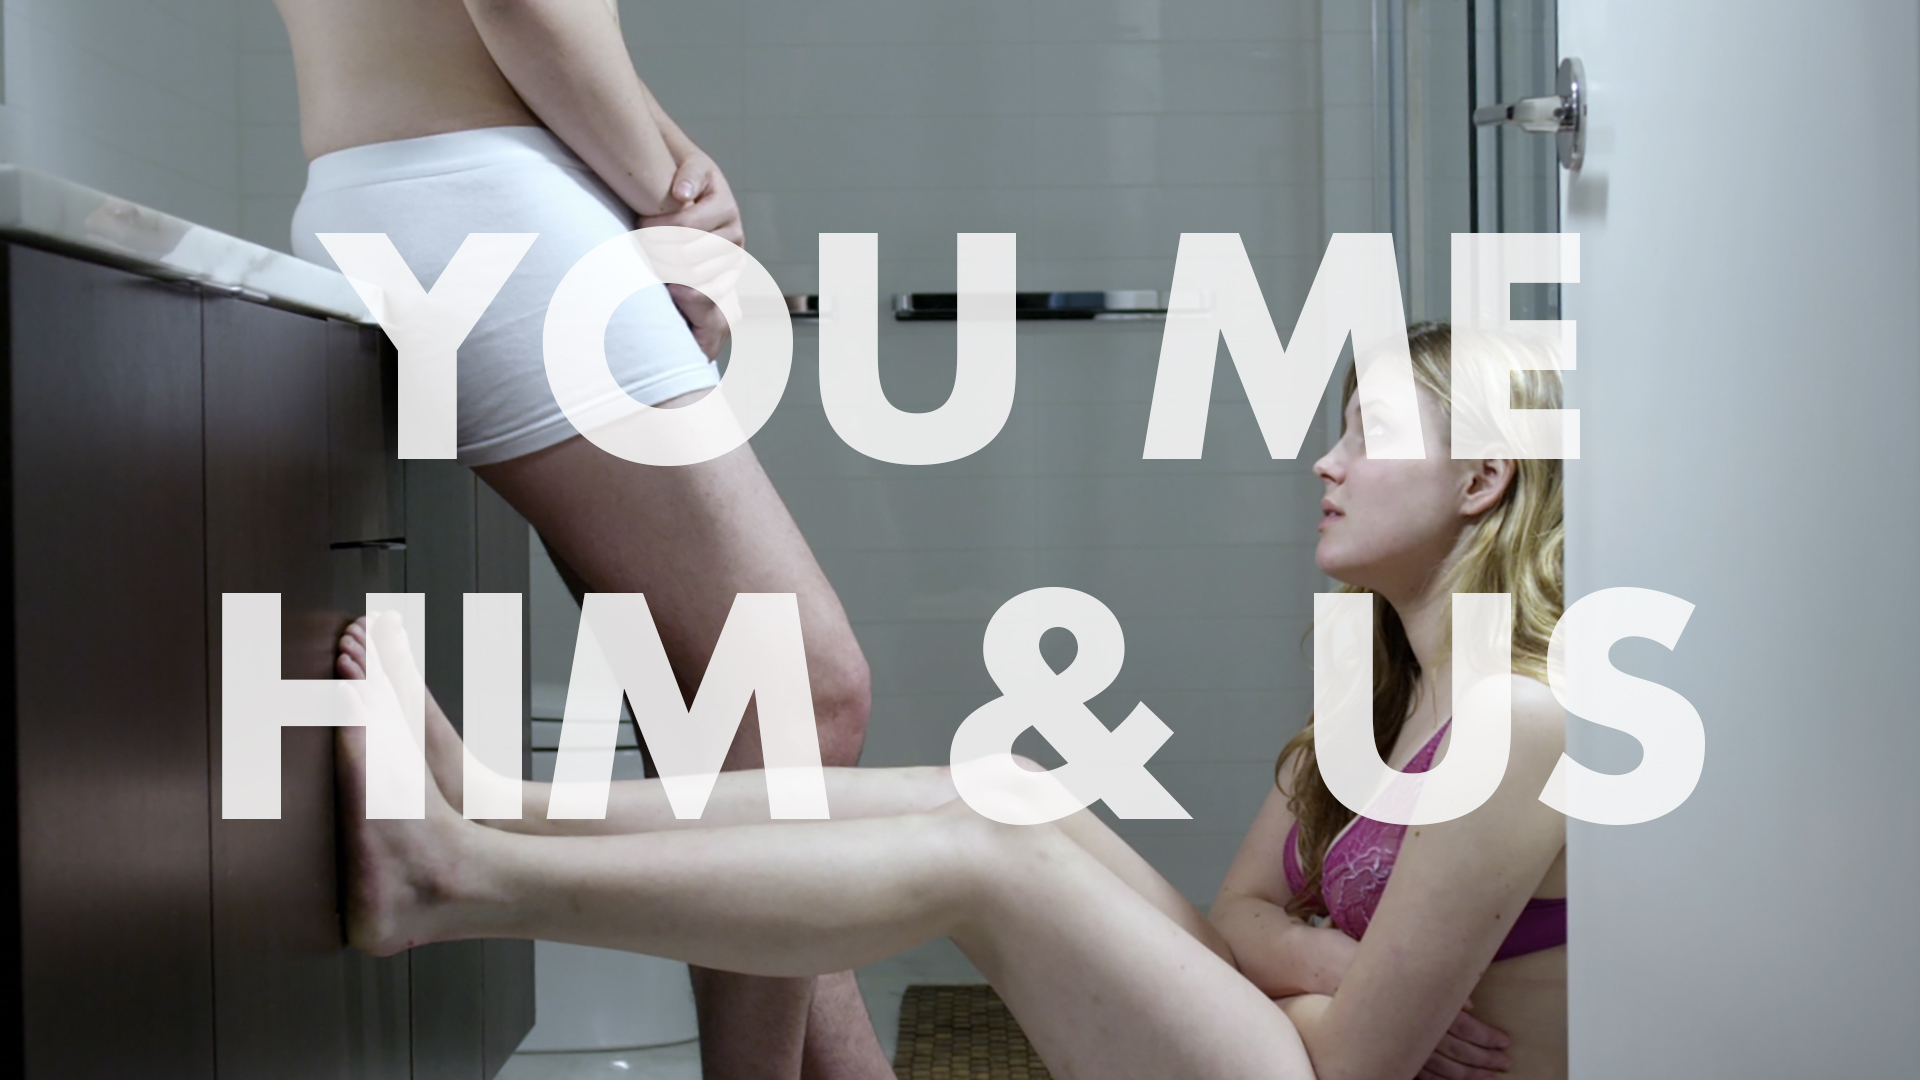 You Me Him & Us